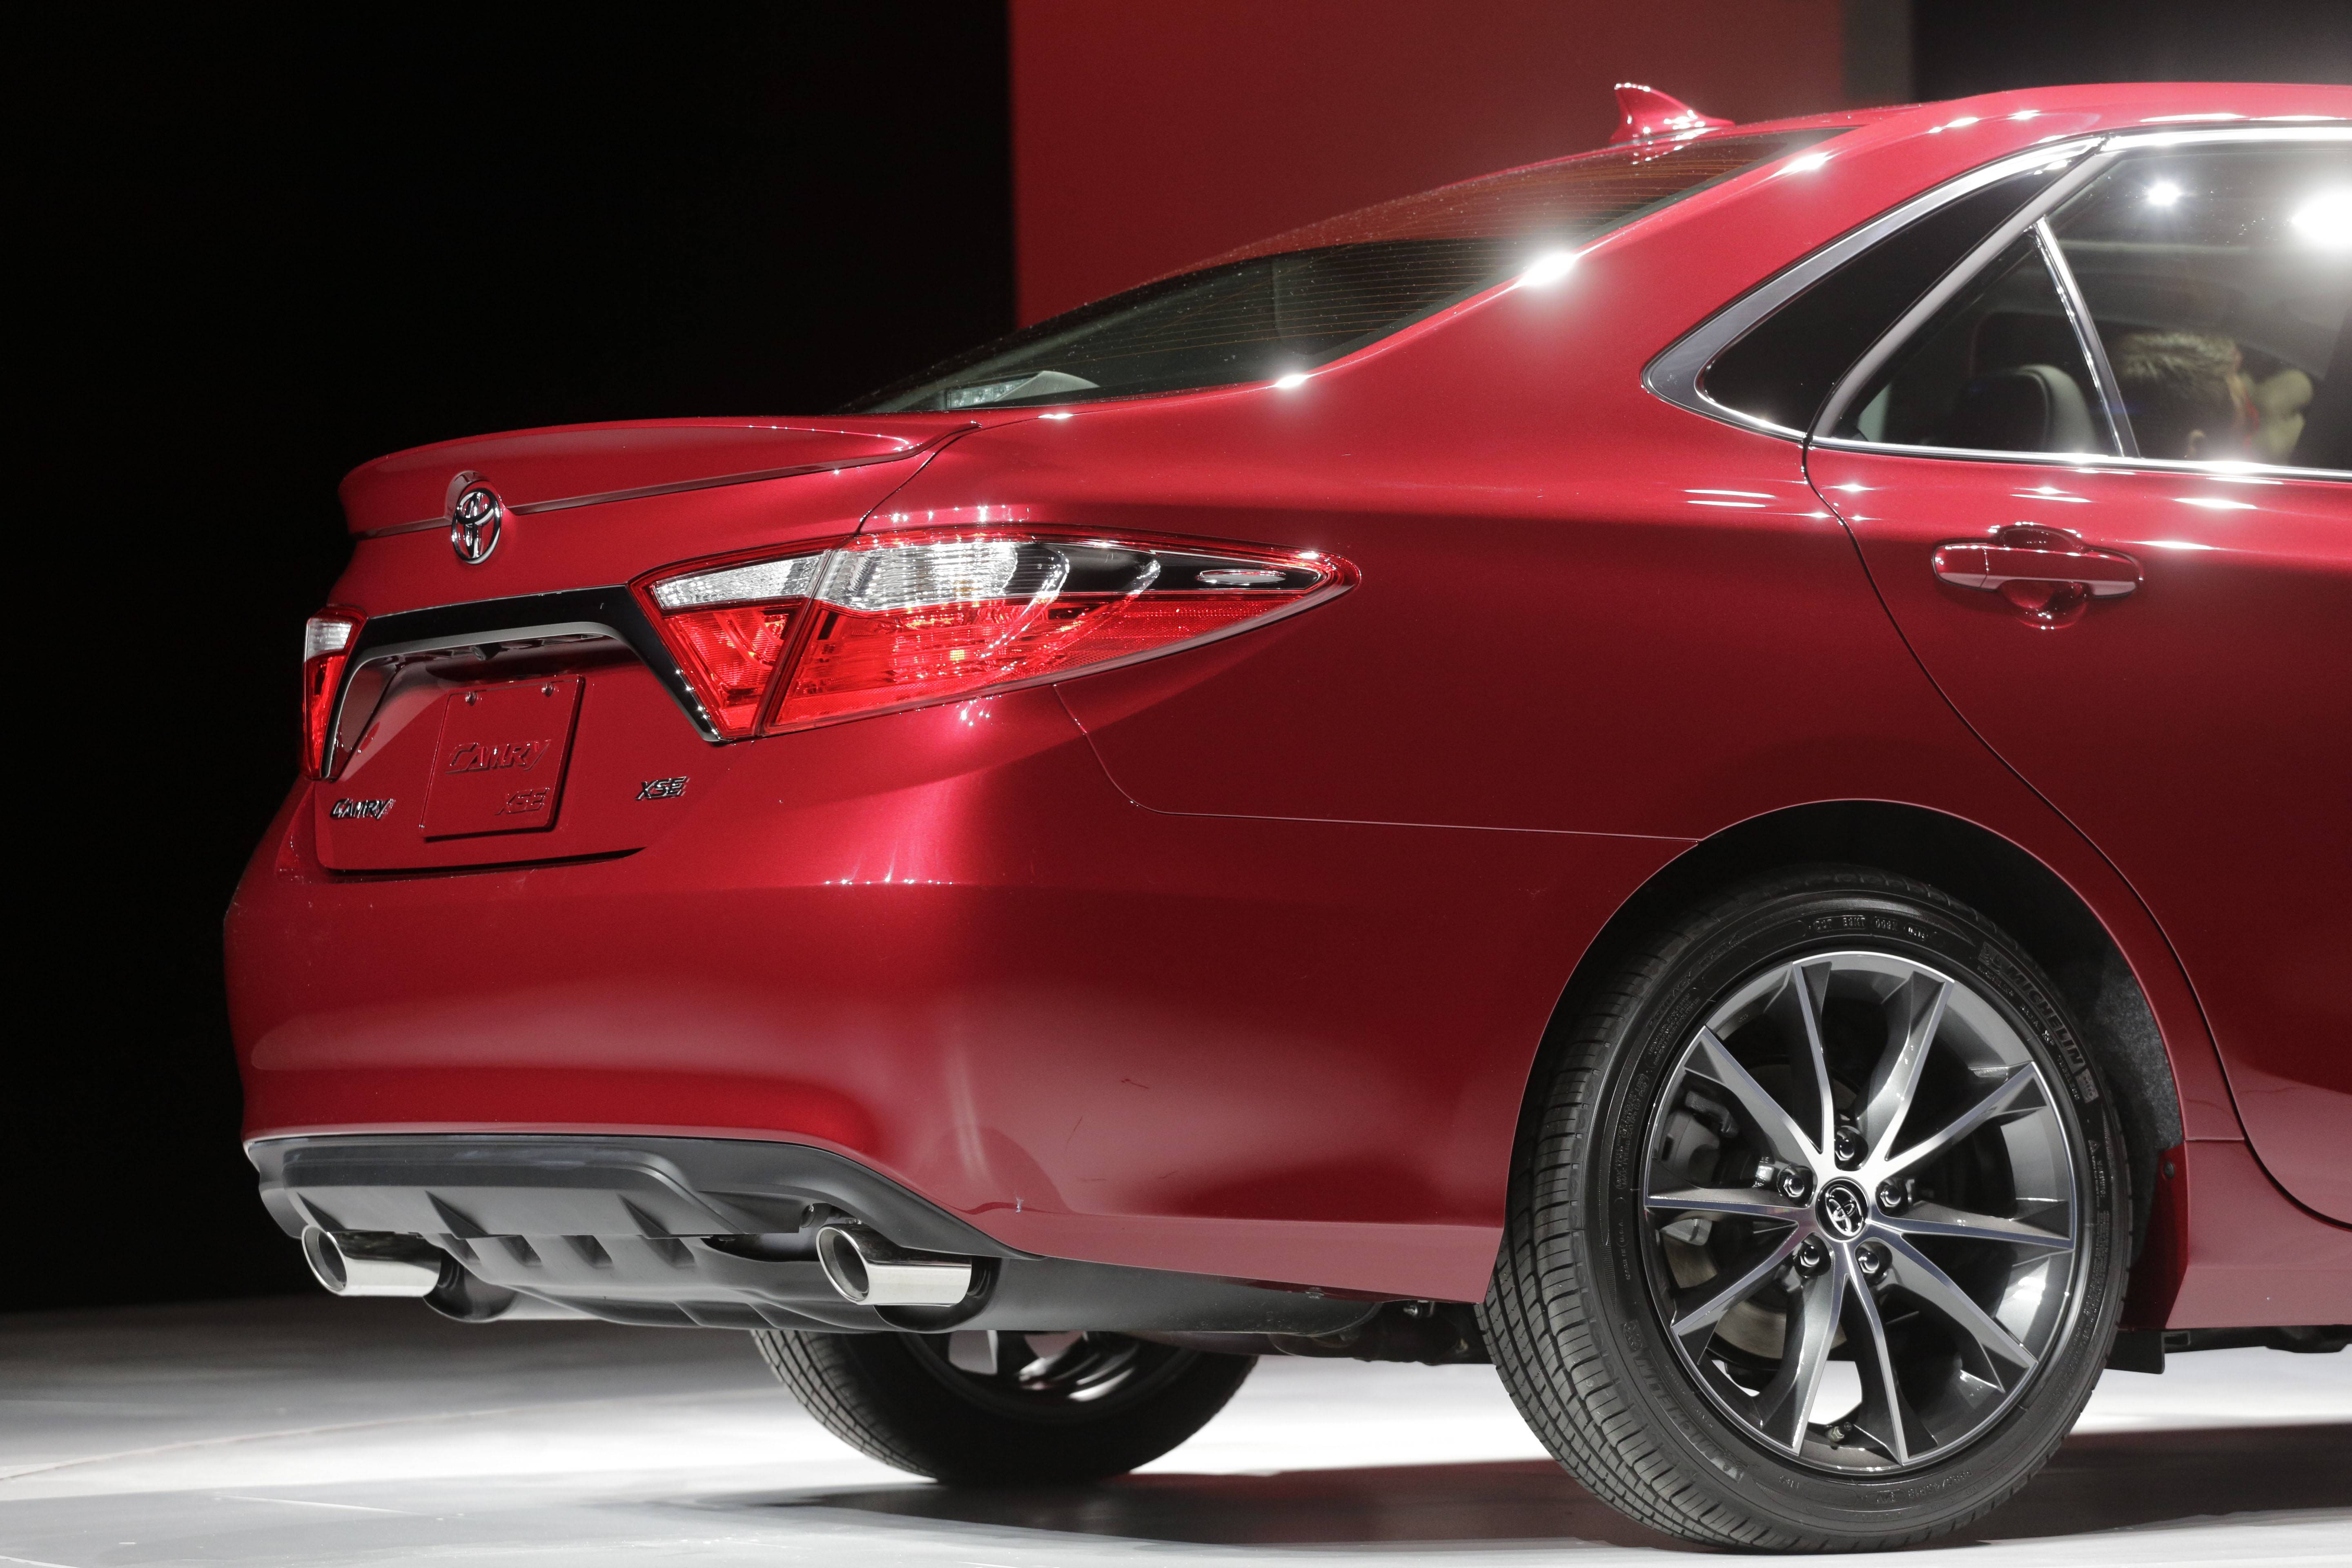 The rear of the 2015 Toyota Camry. Toyota says it changed every exterior piece but the roof.